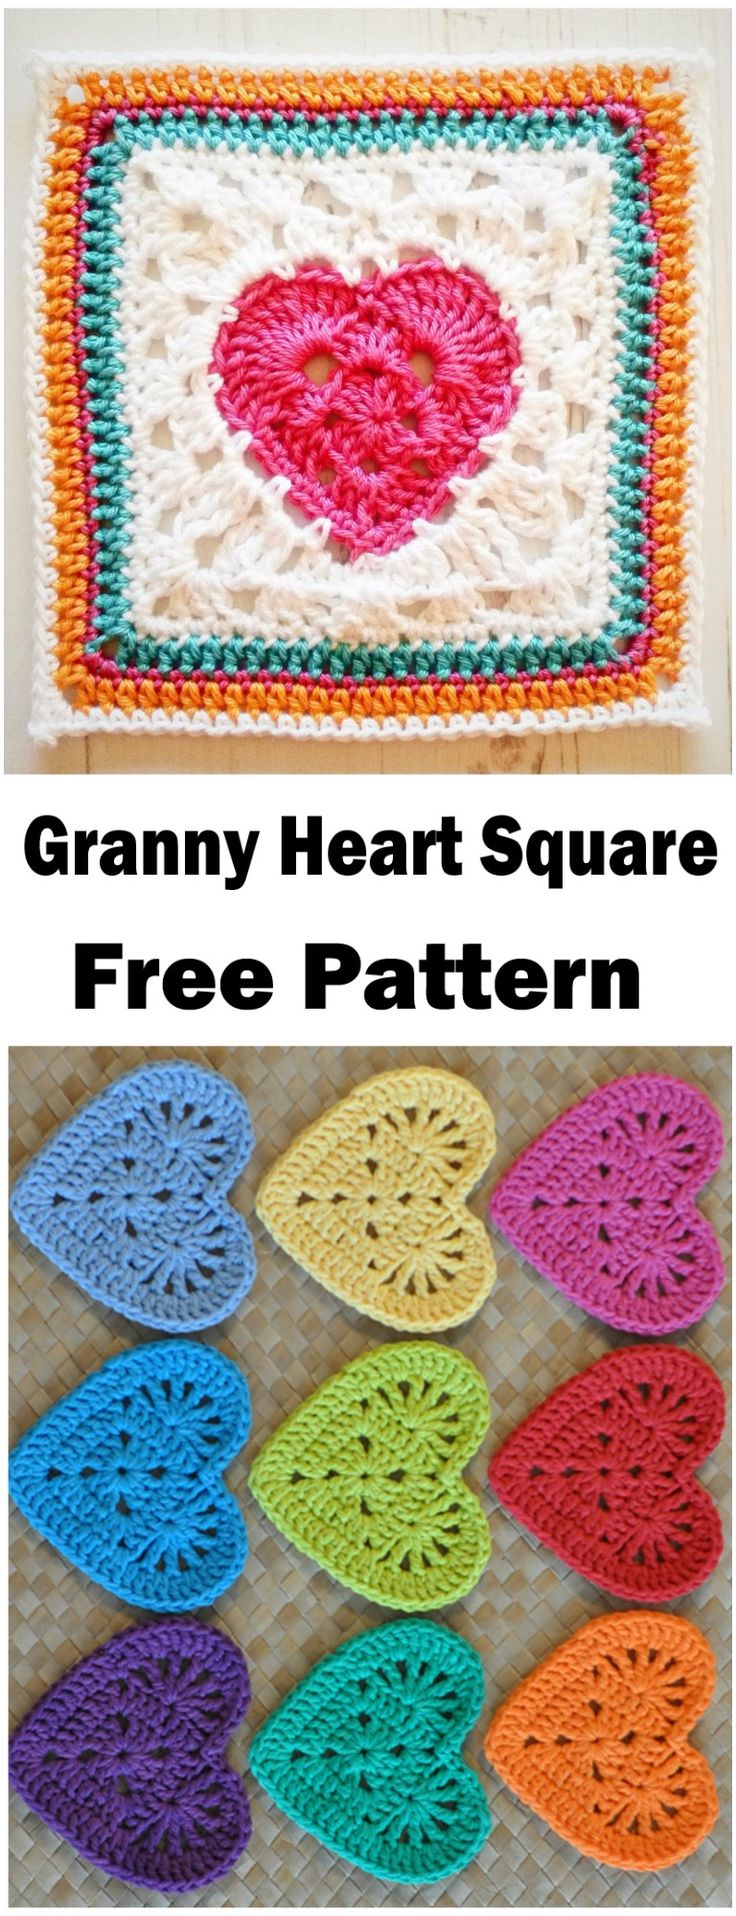 Crochet Heart Granny Square Free Pattern